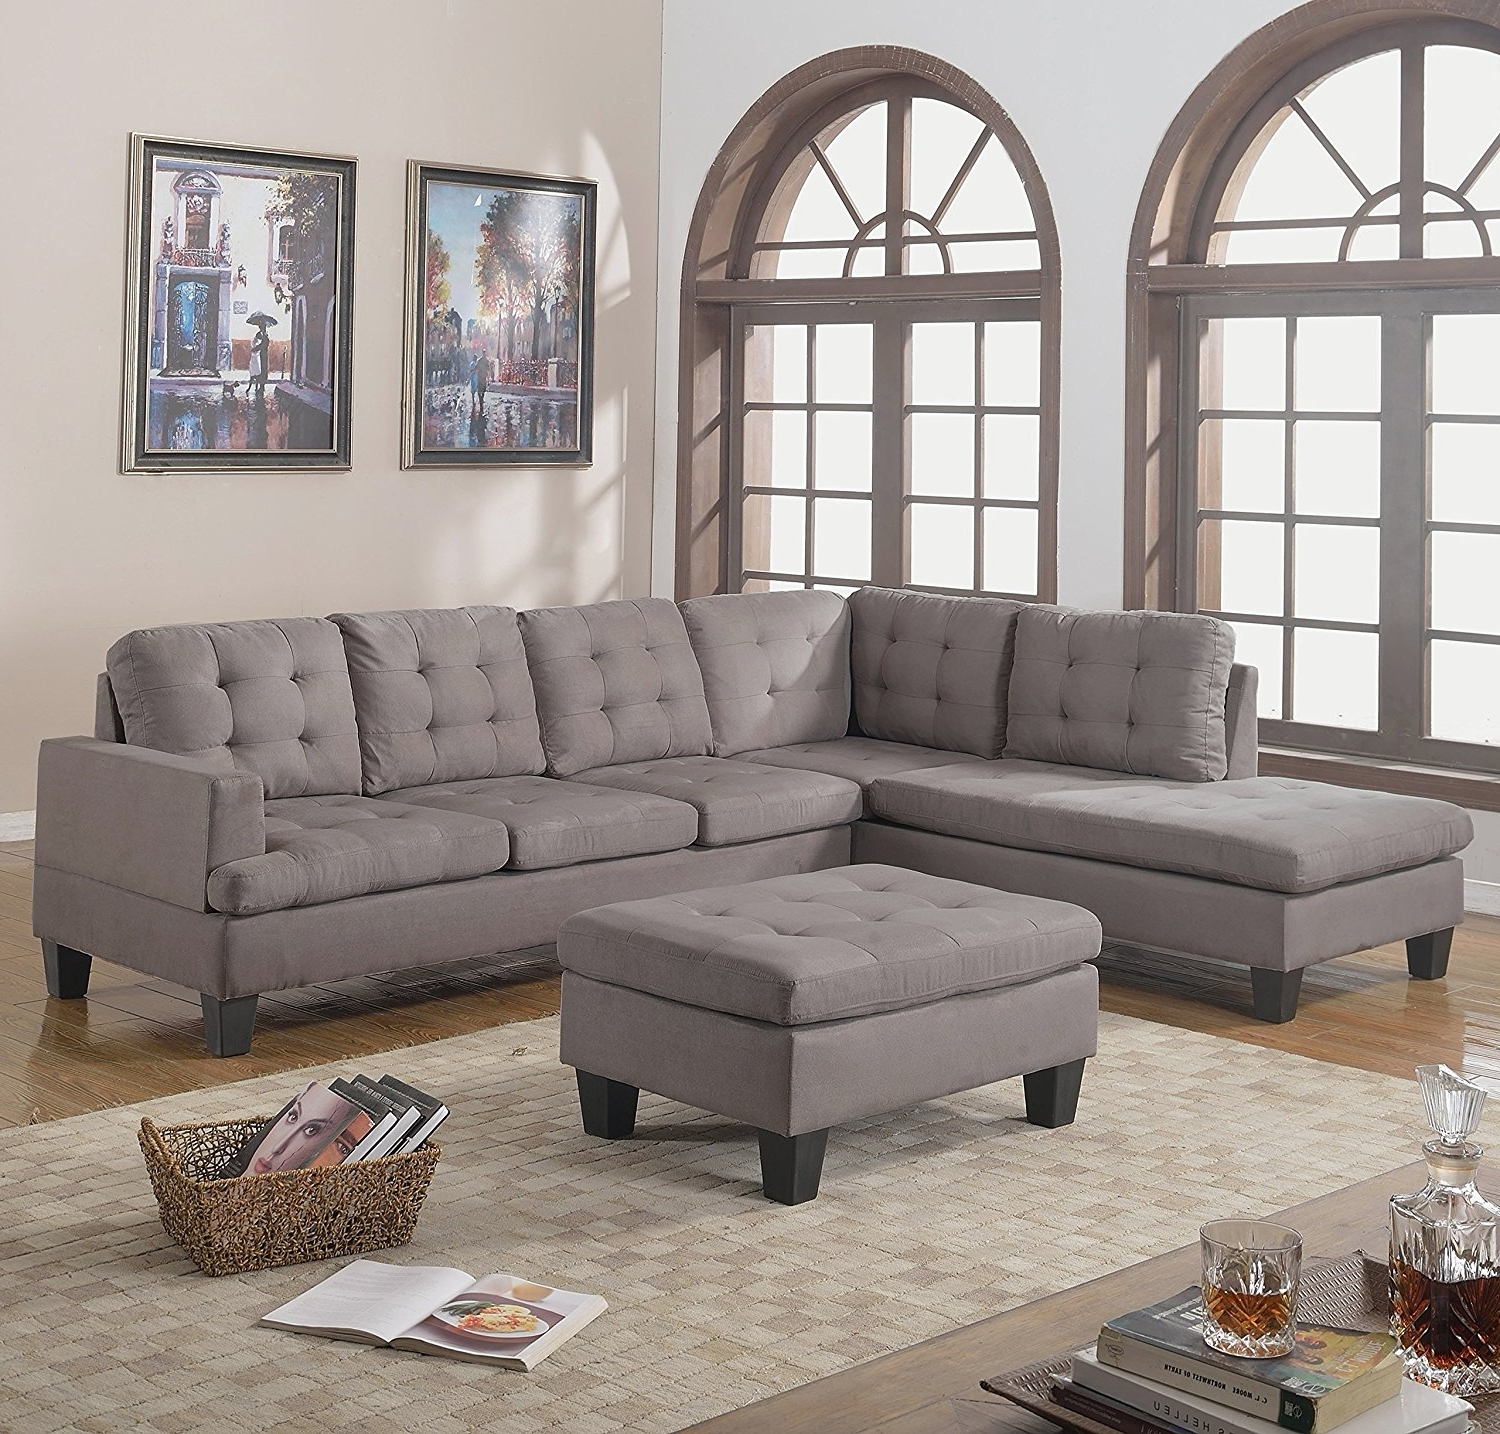 Furniture : American Furniture Warehouse 470 Living Room Furniture Intended For Famous St Cloud Mn Sectional Sofas (Gallery 8 of 20)